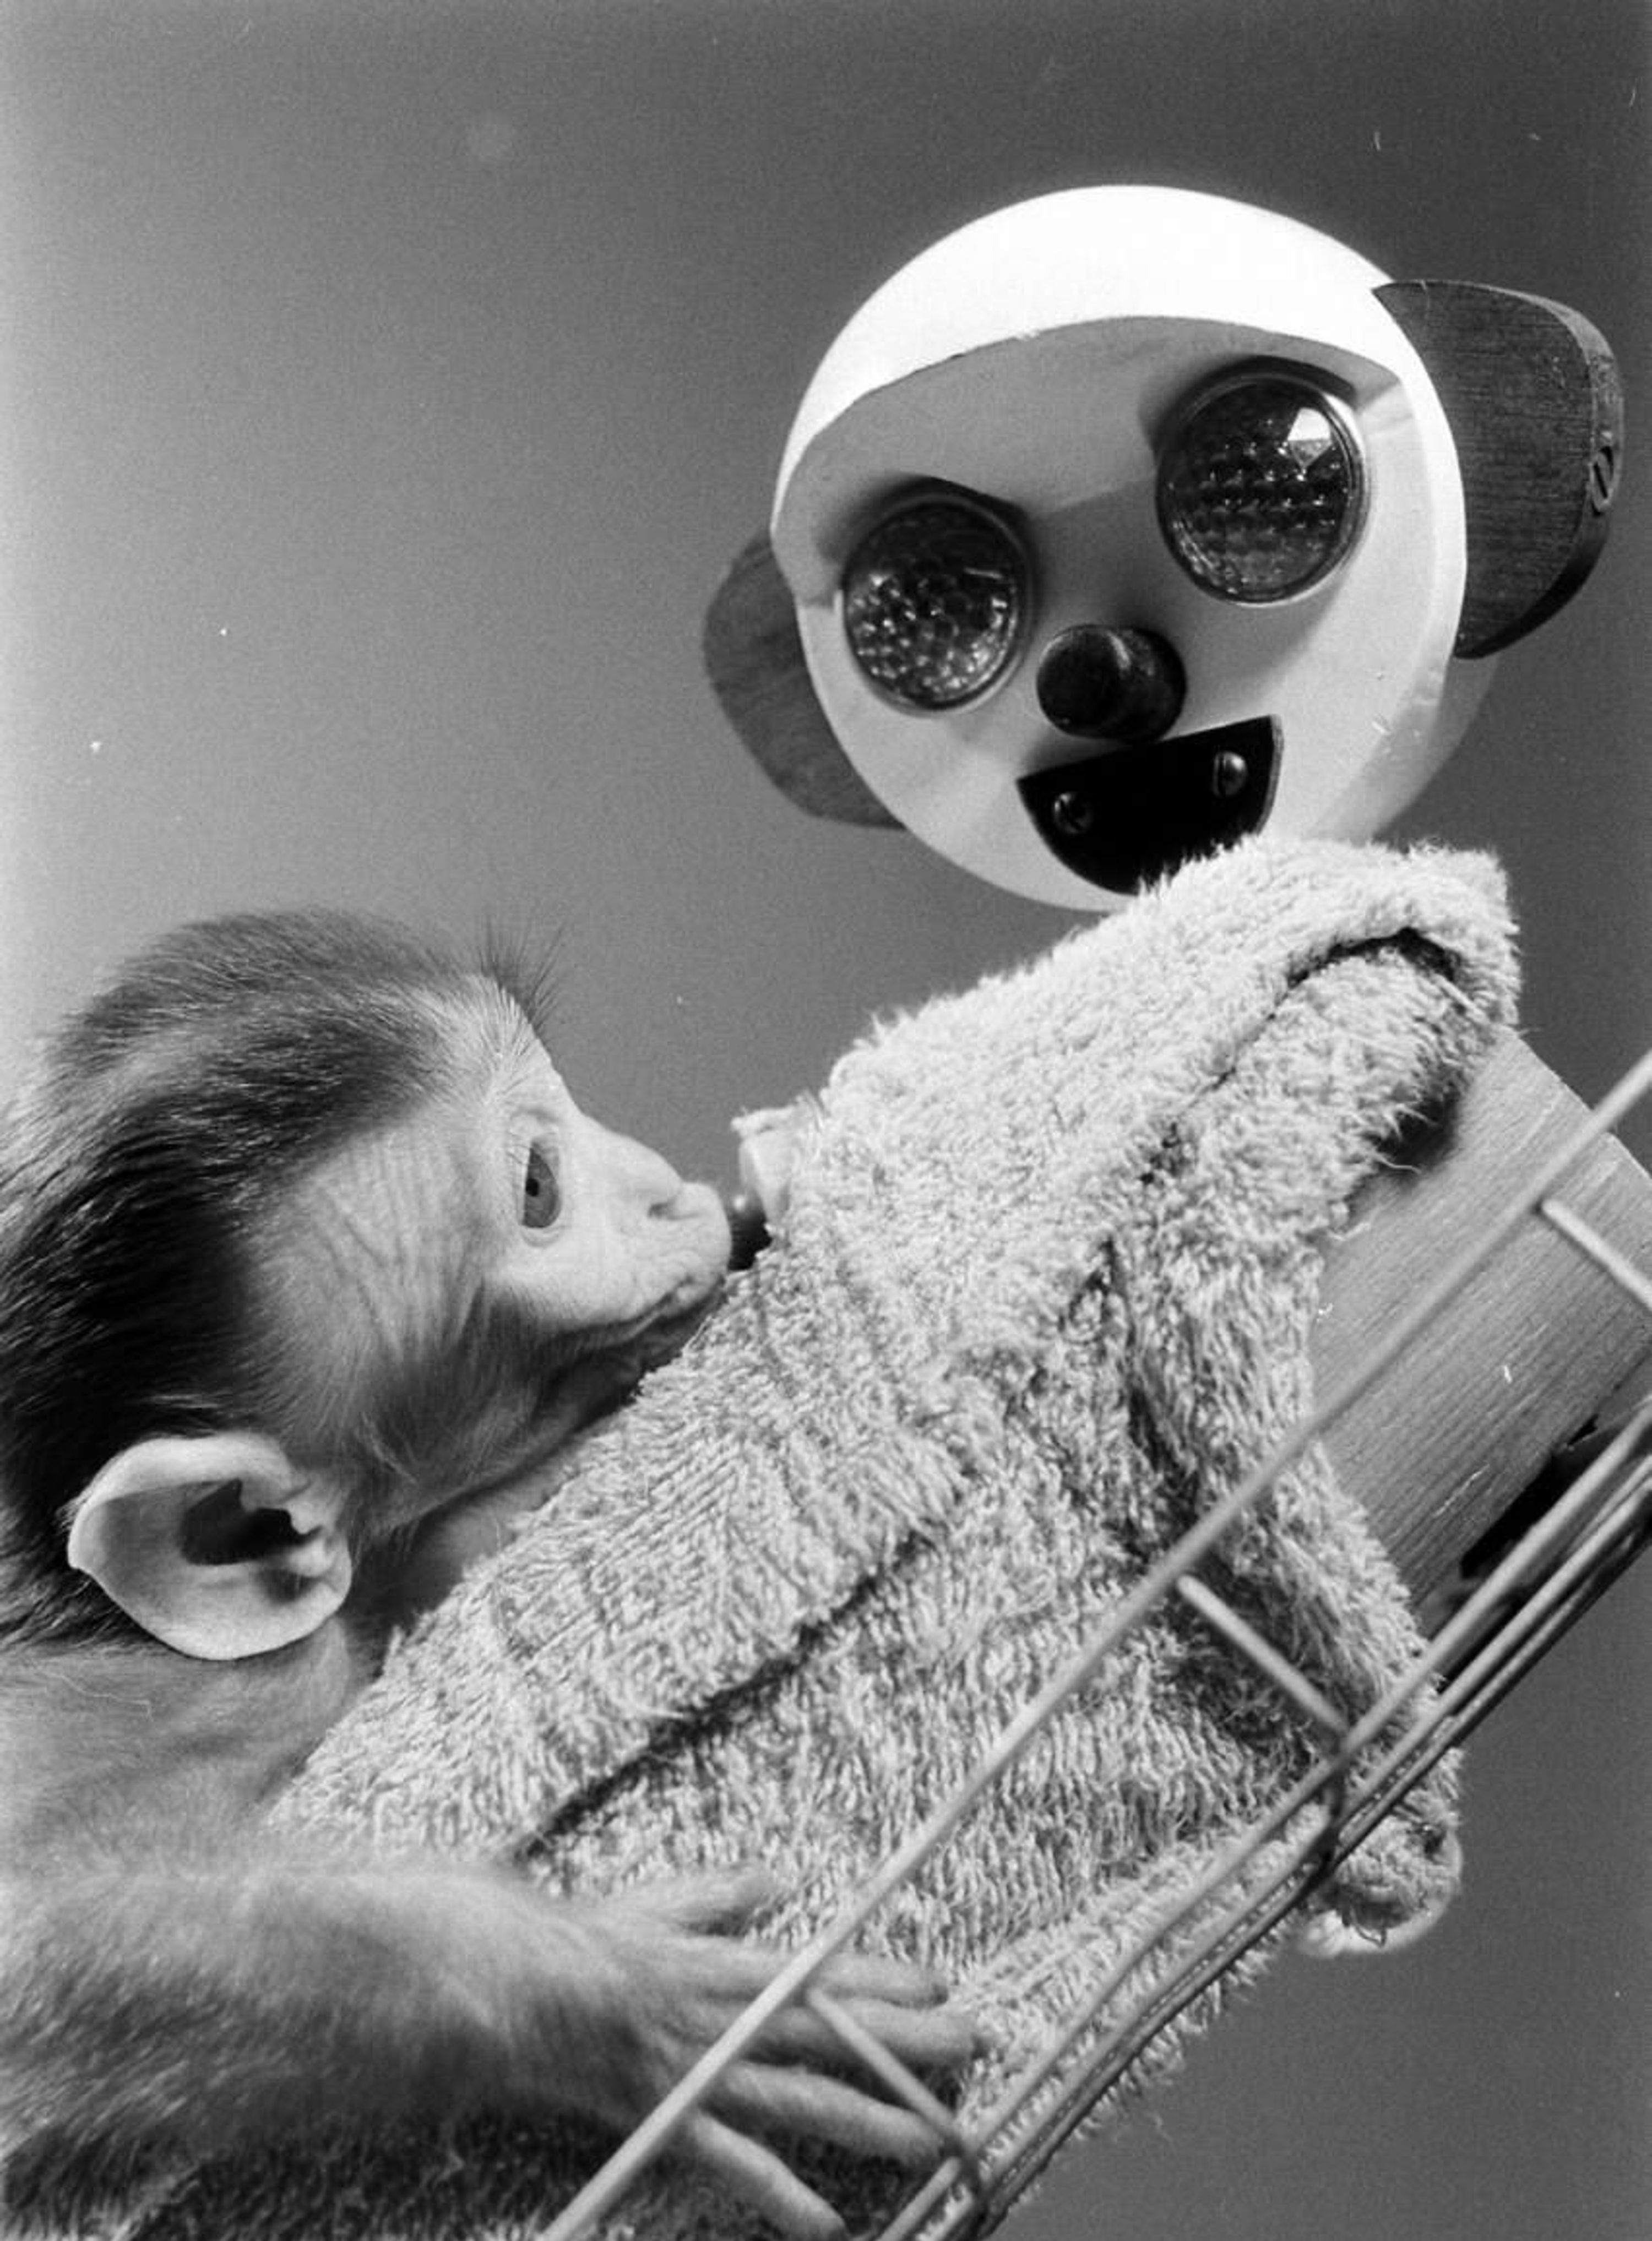 Picture of monkey clinging to a cloth surrogate, from Harlow's experiments.